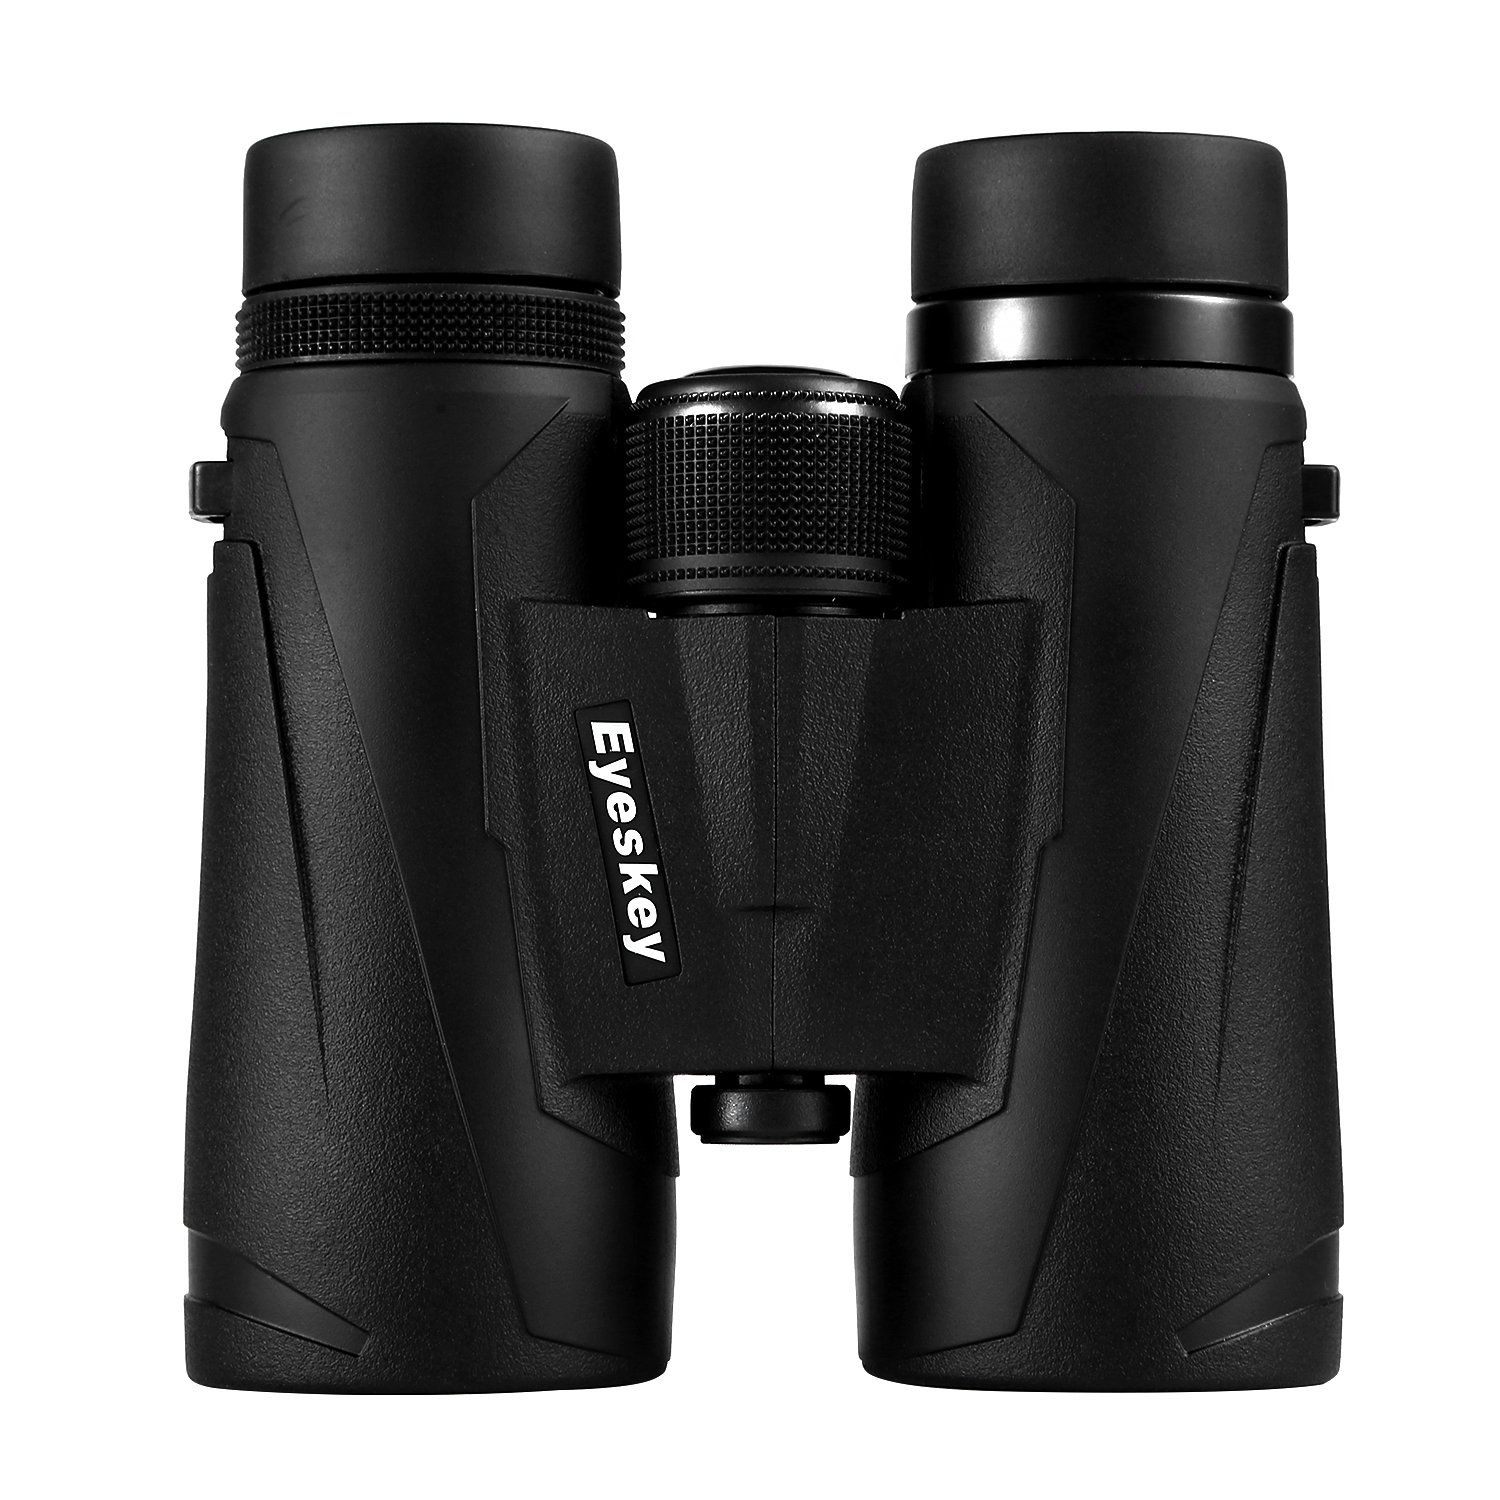 Eyeskey 10x42 Professional Waterproof Binoculars, Best Choice for Travelling, Hunting, Sports Games and Outdoor Activities, Extremely Clear and Bright by Eyeskey